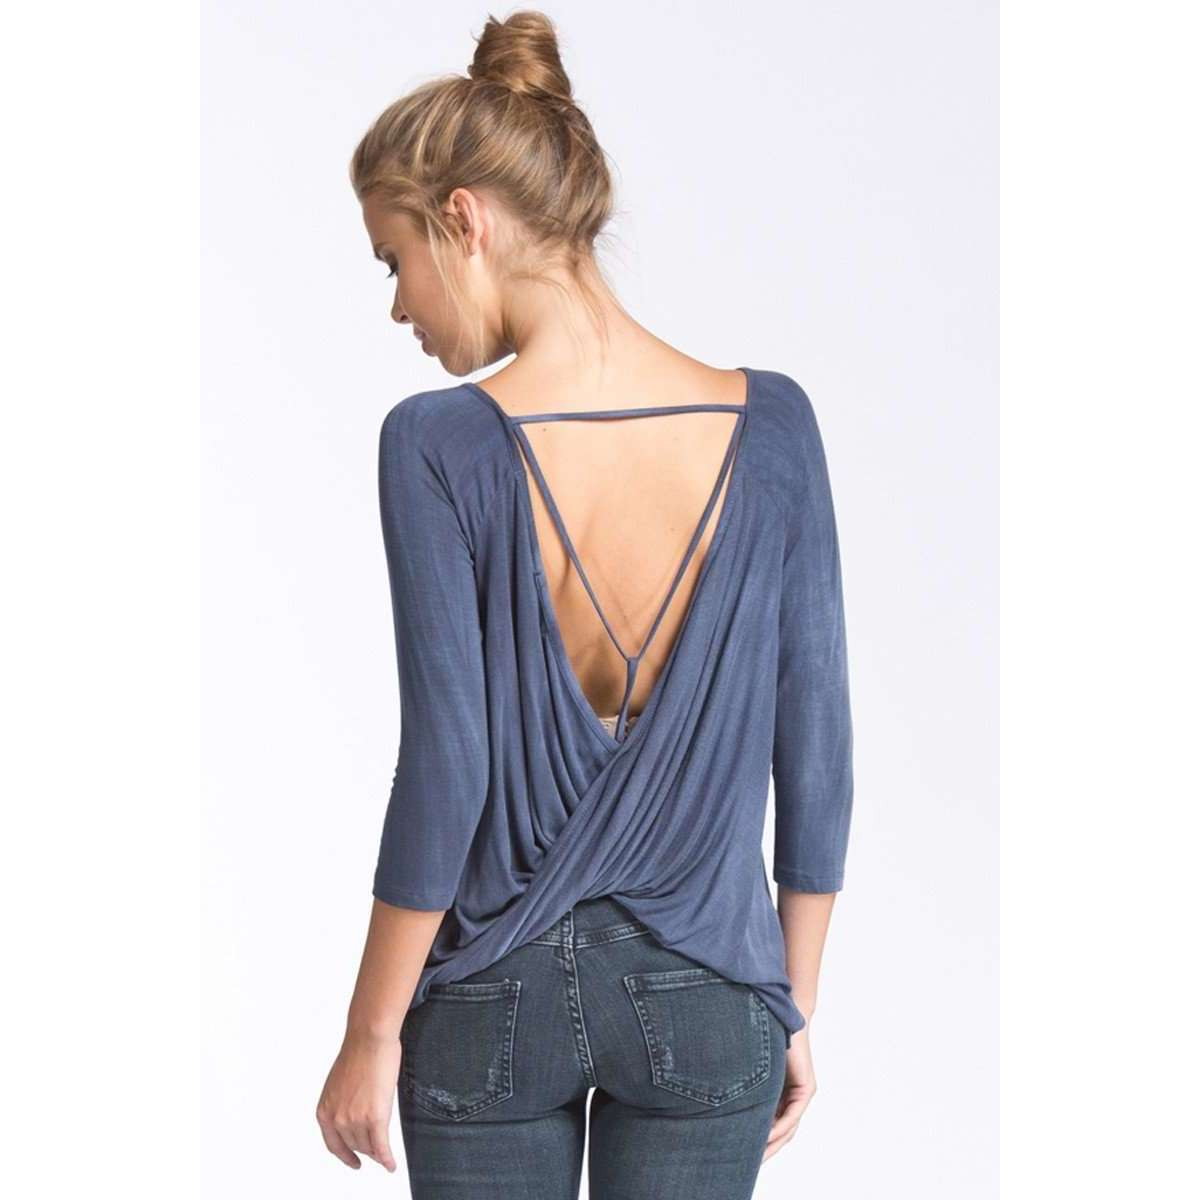 Shancy 3/4 Length Sleeve Top w/ Detailed Back